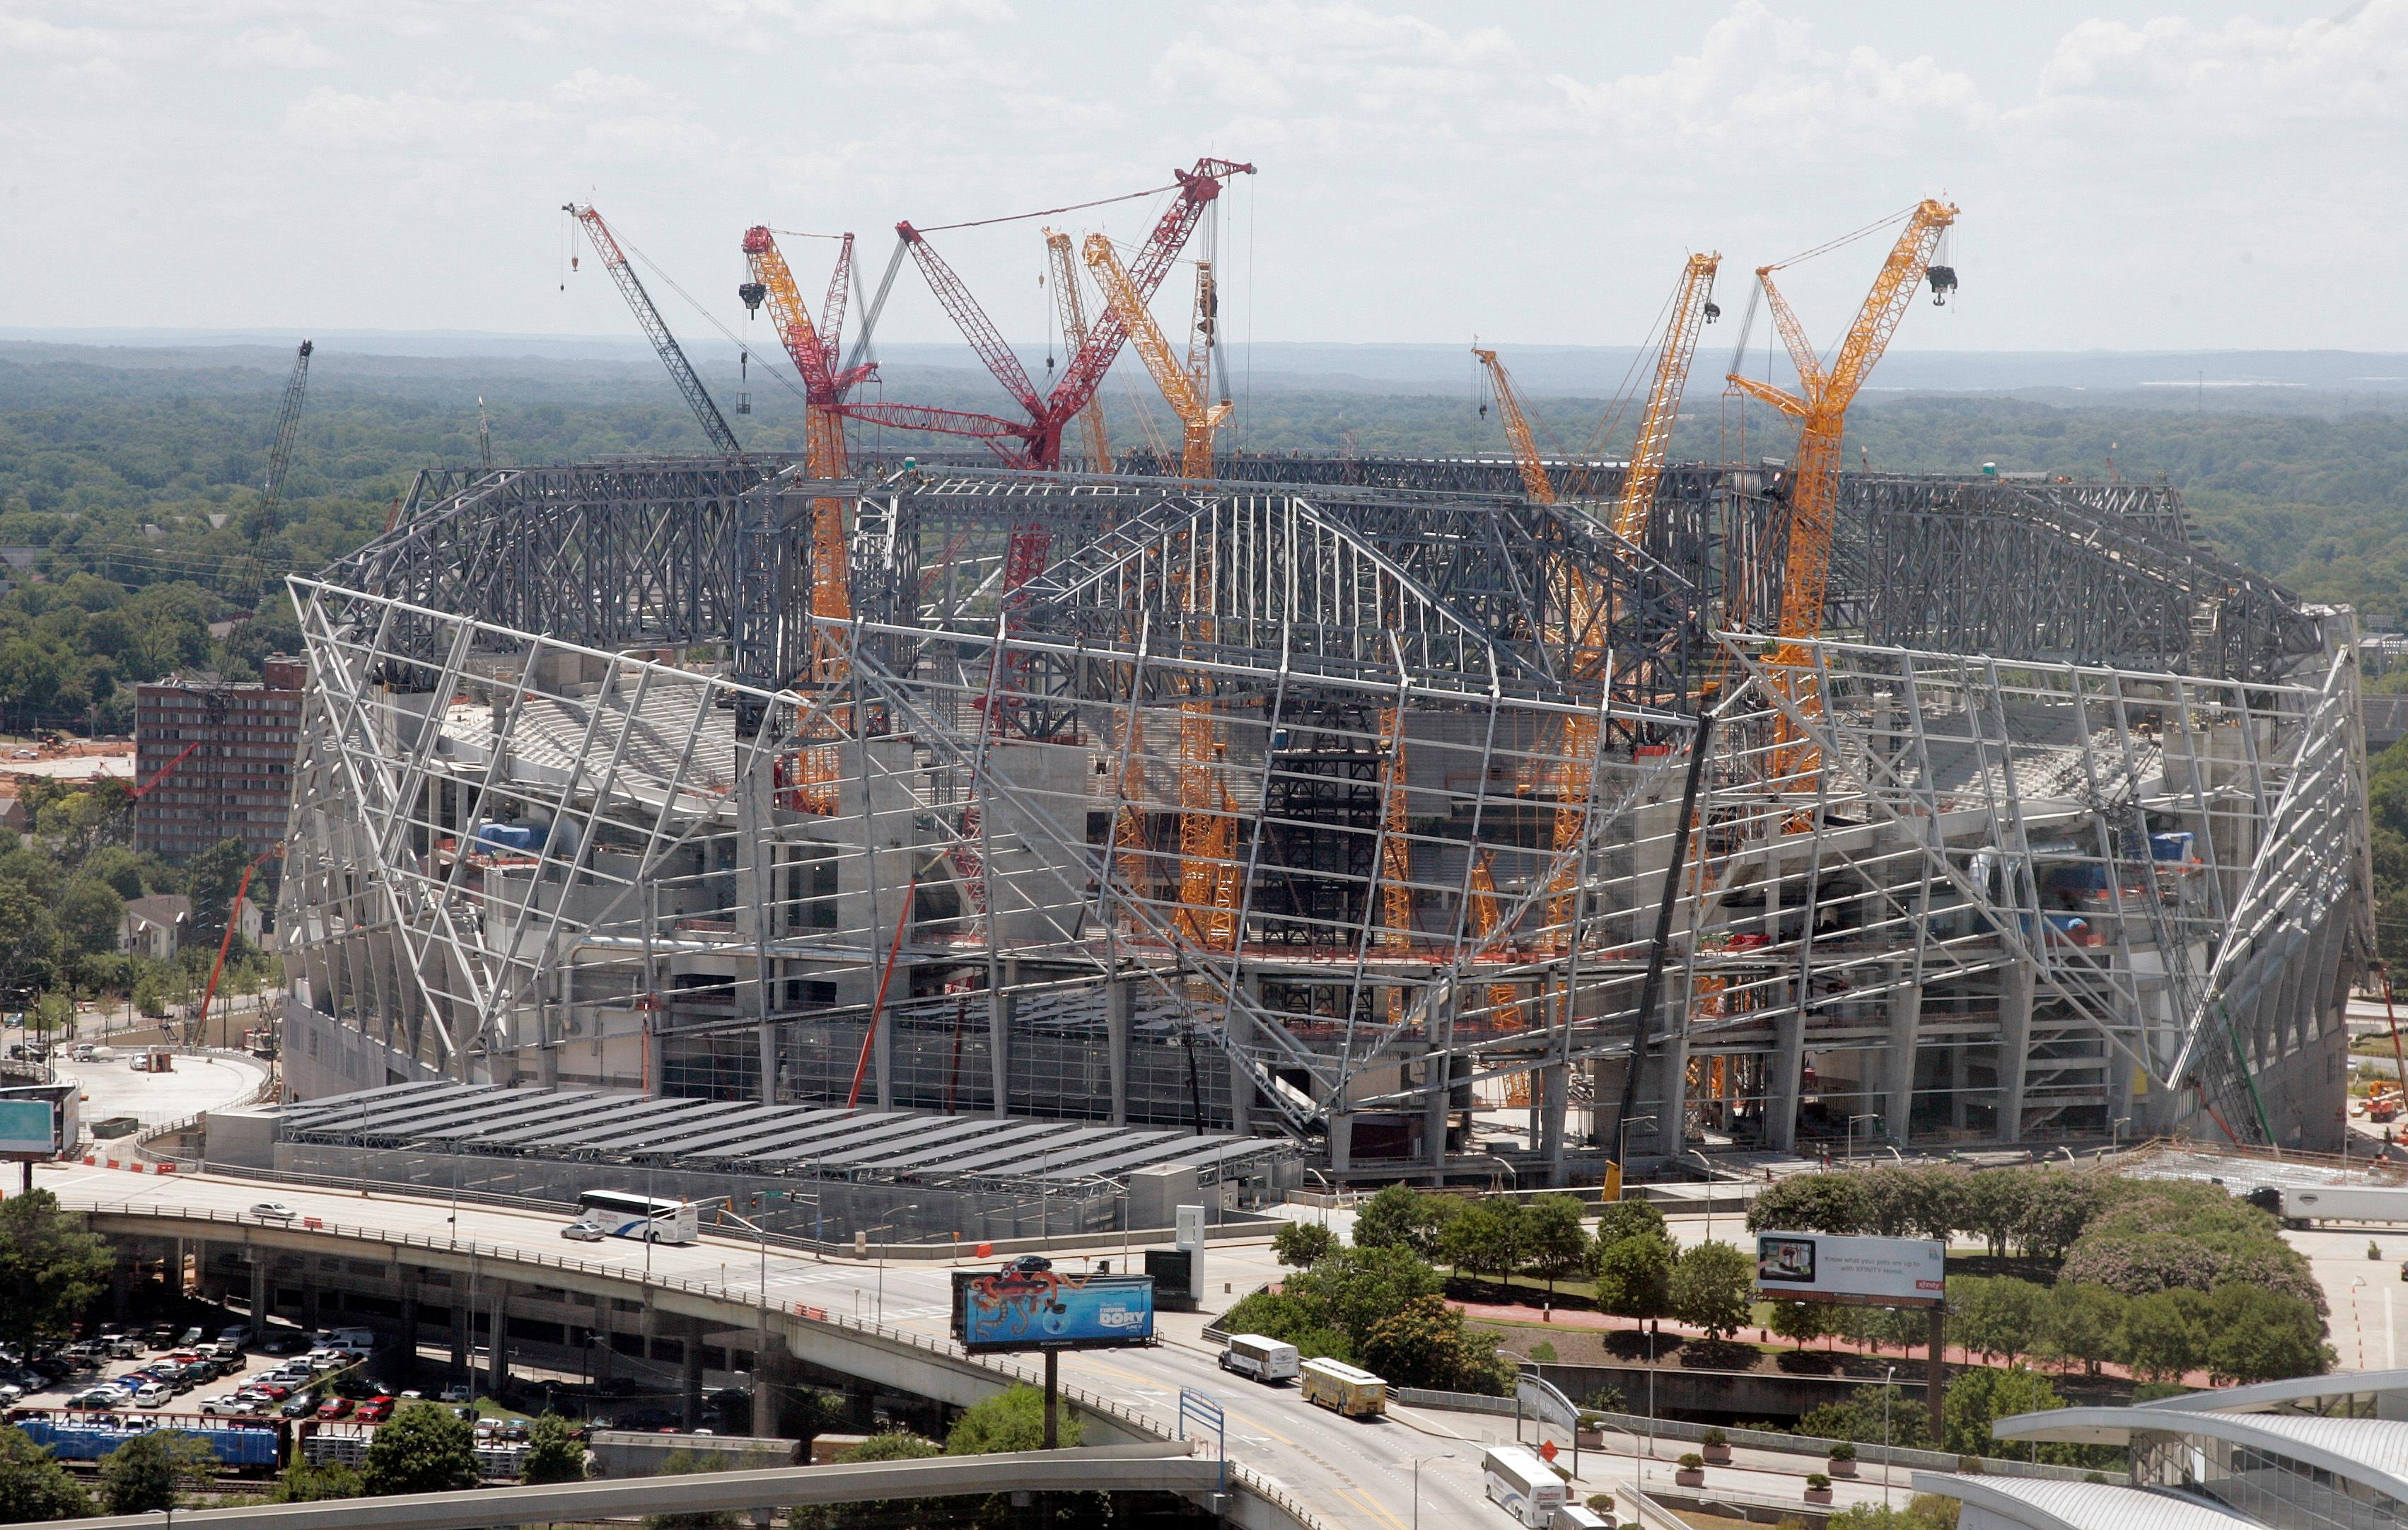 "In this July 14, 2016 photo, construction crews work on the the Mercedes-Benz stadium, in Atlanta. The new $1.5 million stadium is home to the National Football League's Atlanta Falcons and Major League Soccer's Atlanta United. It features a retractable roof; a 1,100-foot ""halo board"" video display; and a giant steel sculpture of a Falcon with its 70-foot wingspan at one of the main entrances. (AP Photo/John Bazemore)"